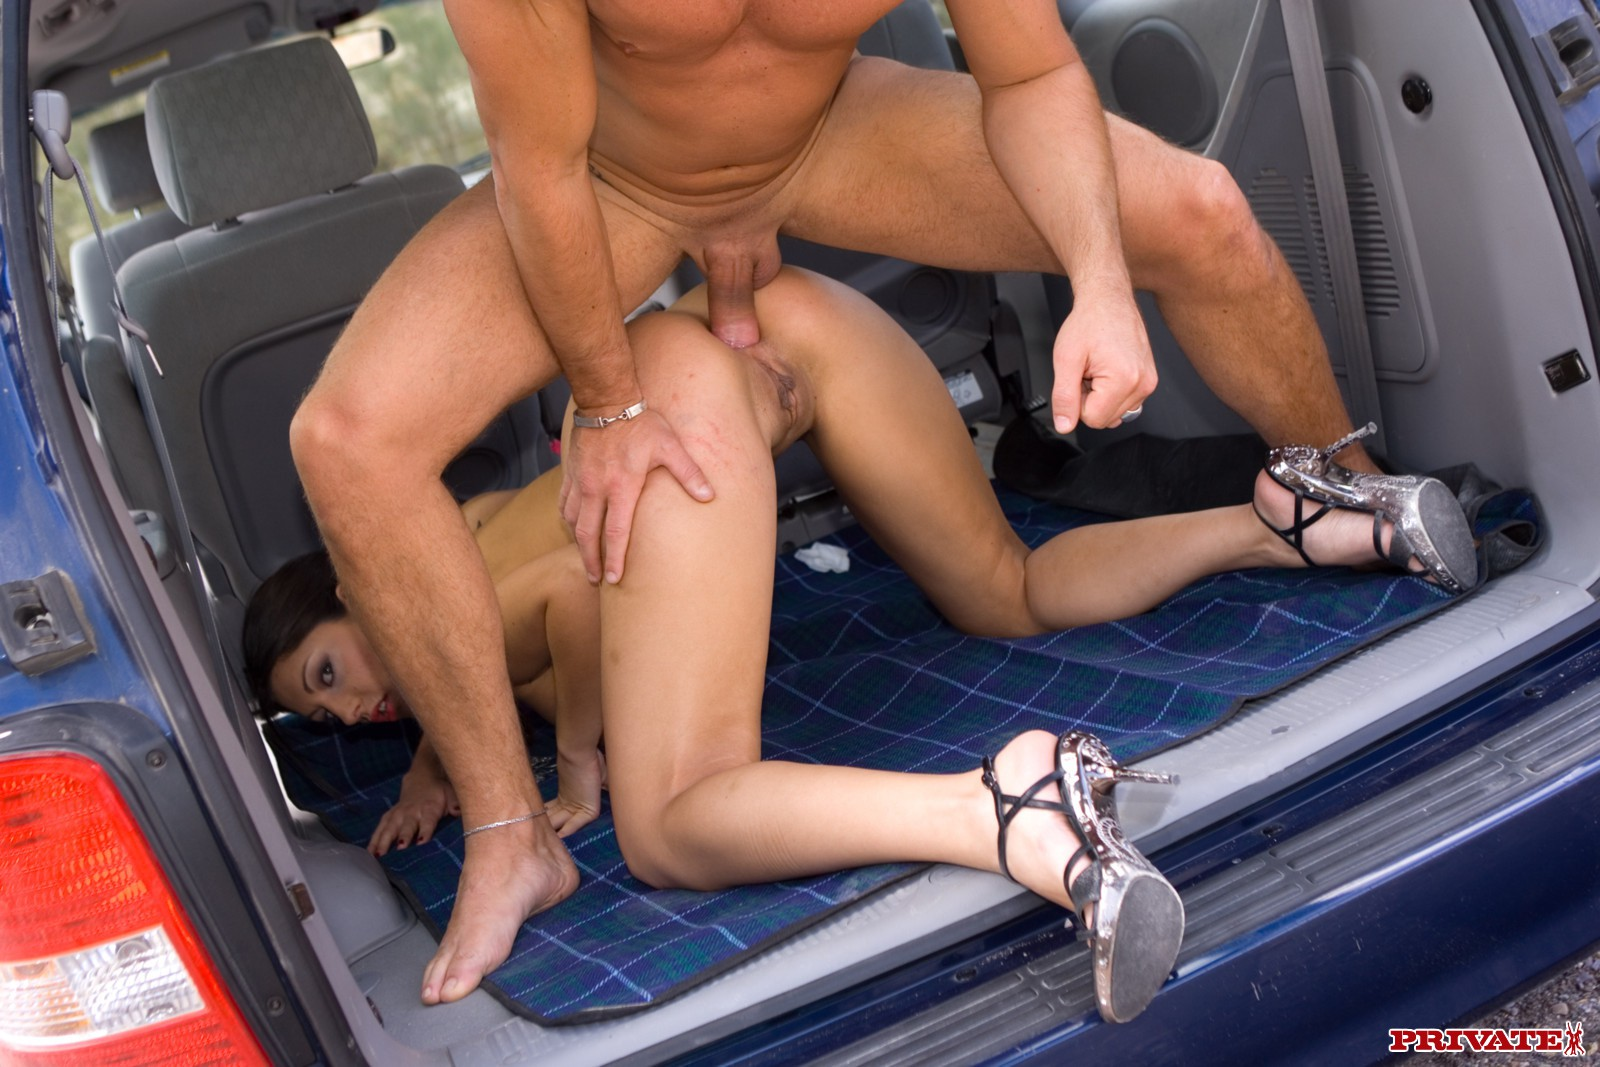 Topless models taking a skinny well rich in the car by pornolocas friend porn